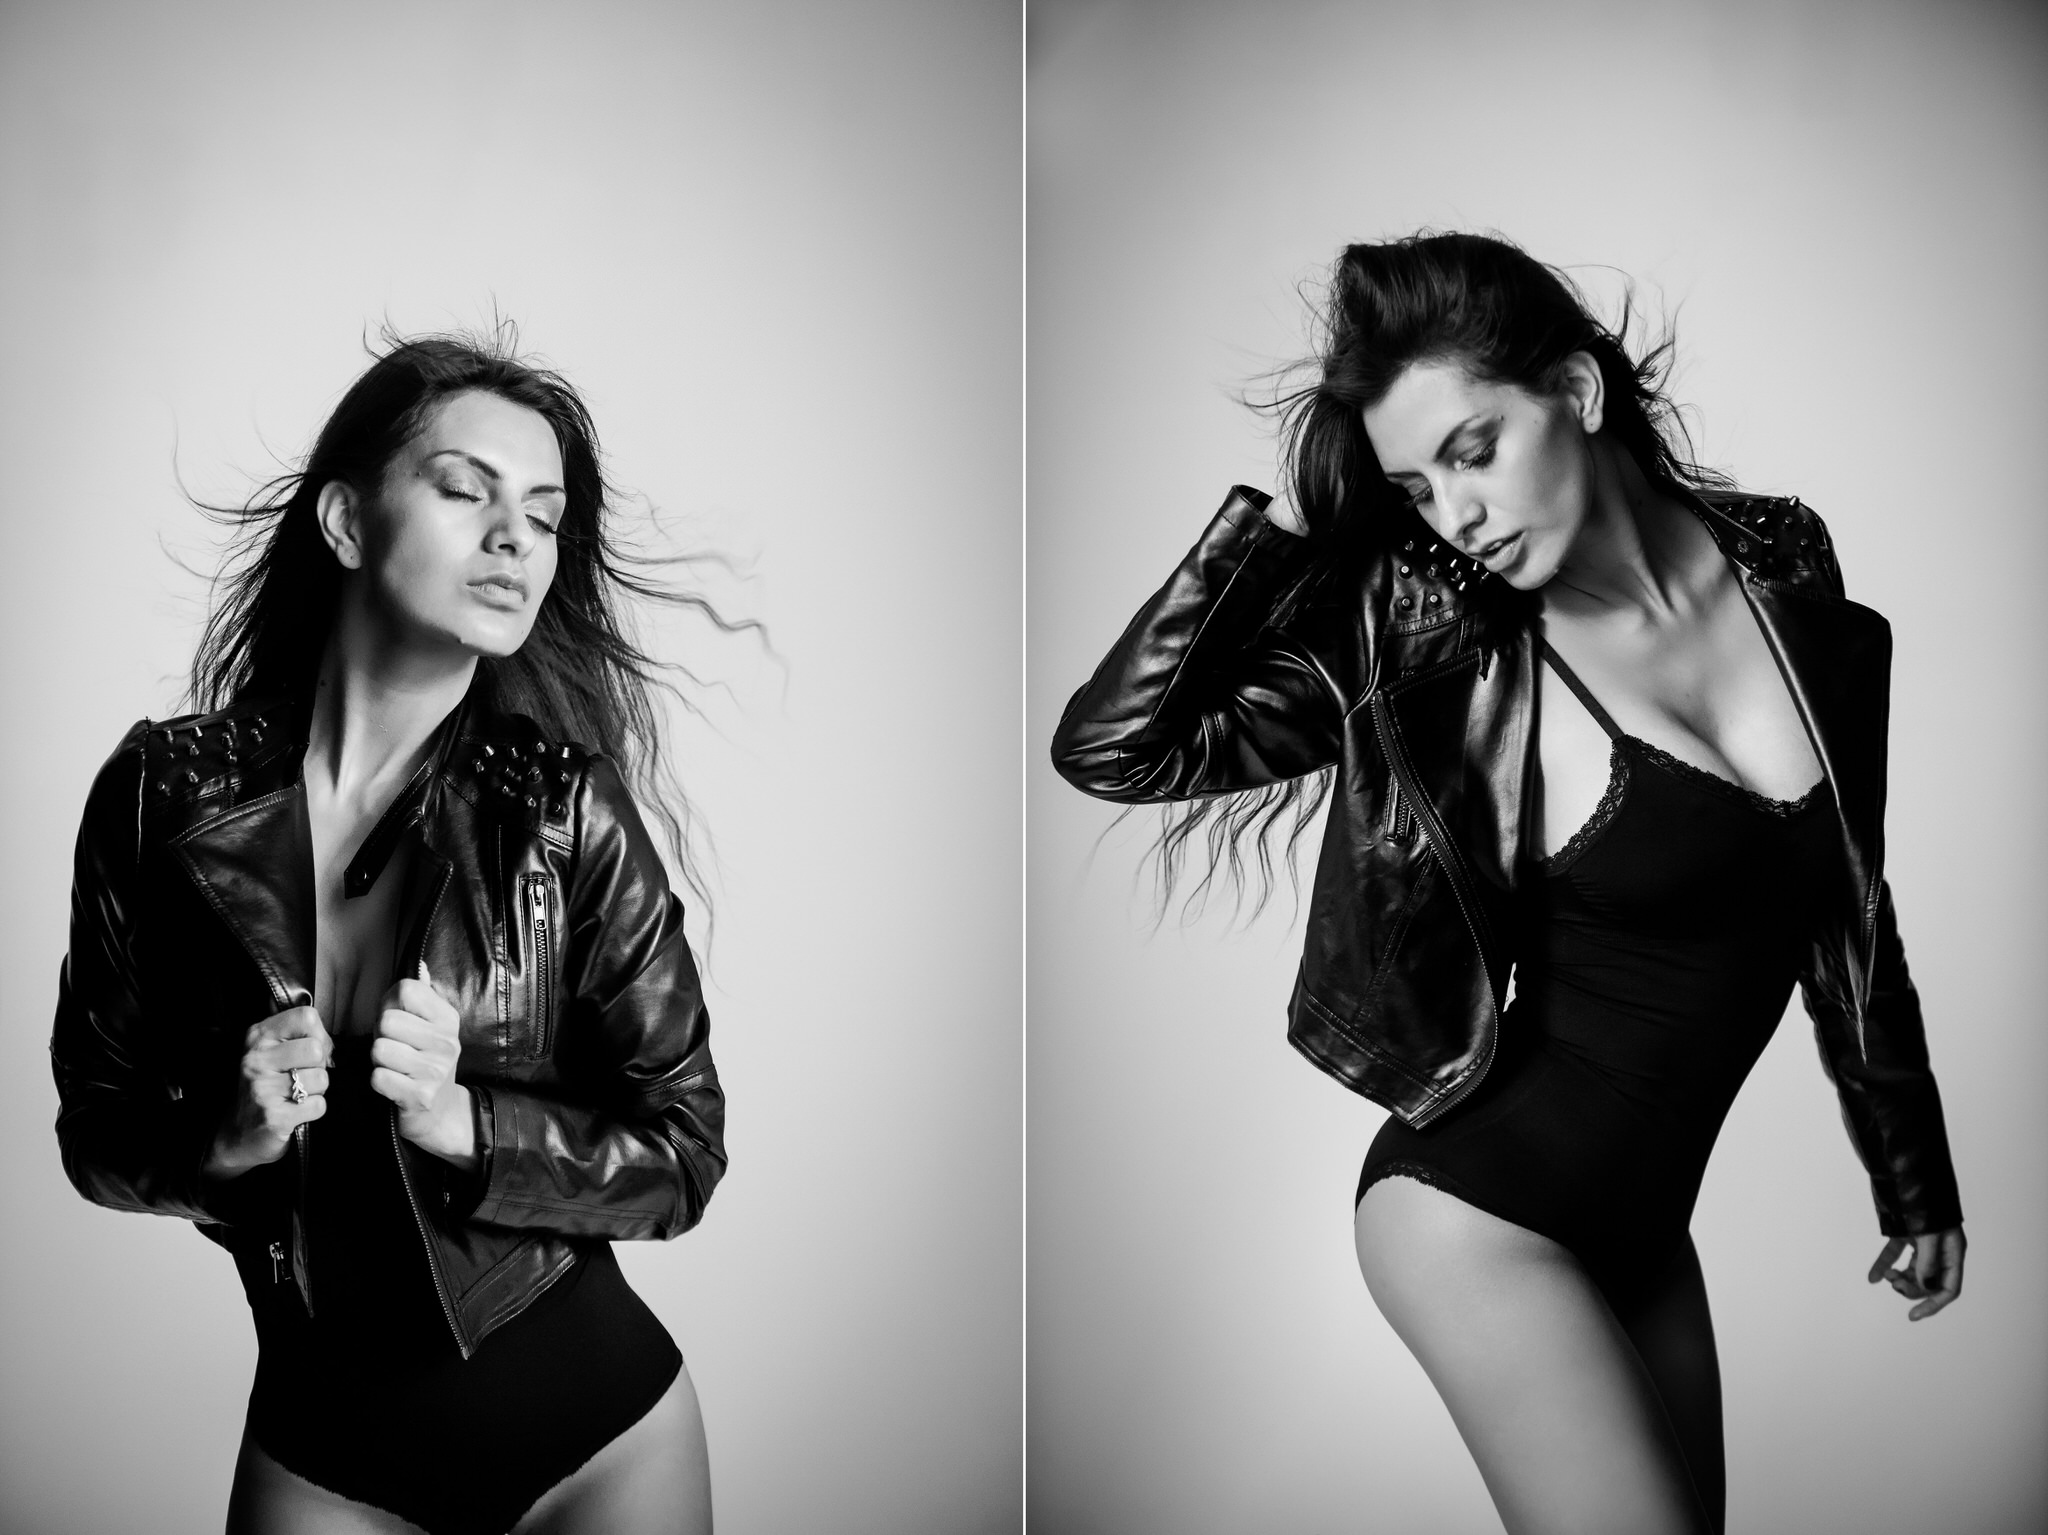 Beauty Modeling Portfolio shots by Anna Nguyen